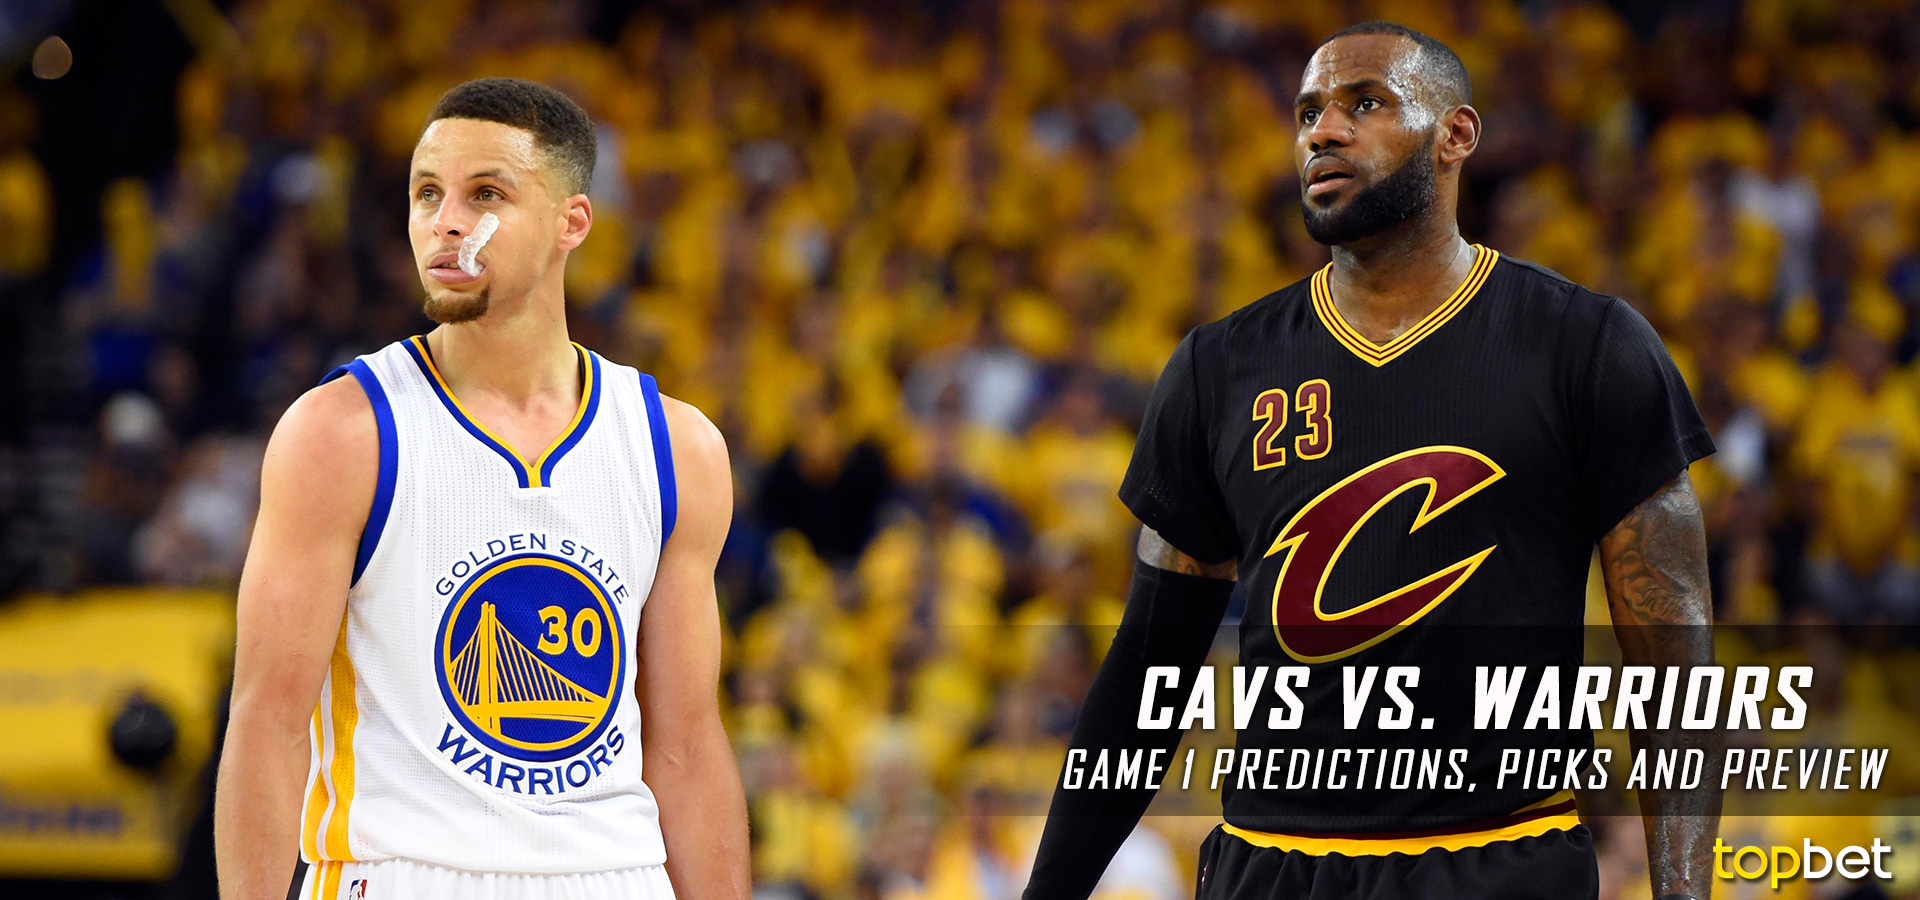 Cavs vs Warriors Game 1 Predictions & Picks: 2017 NBA Finals